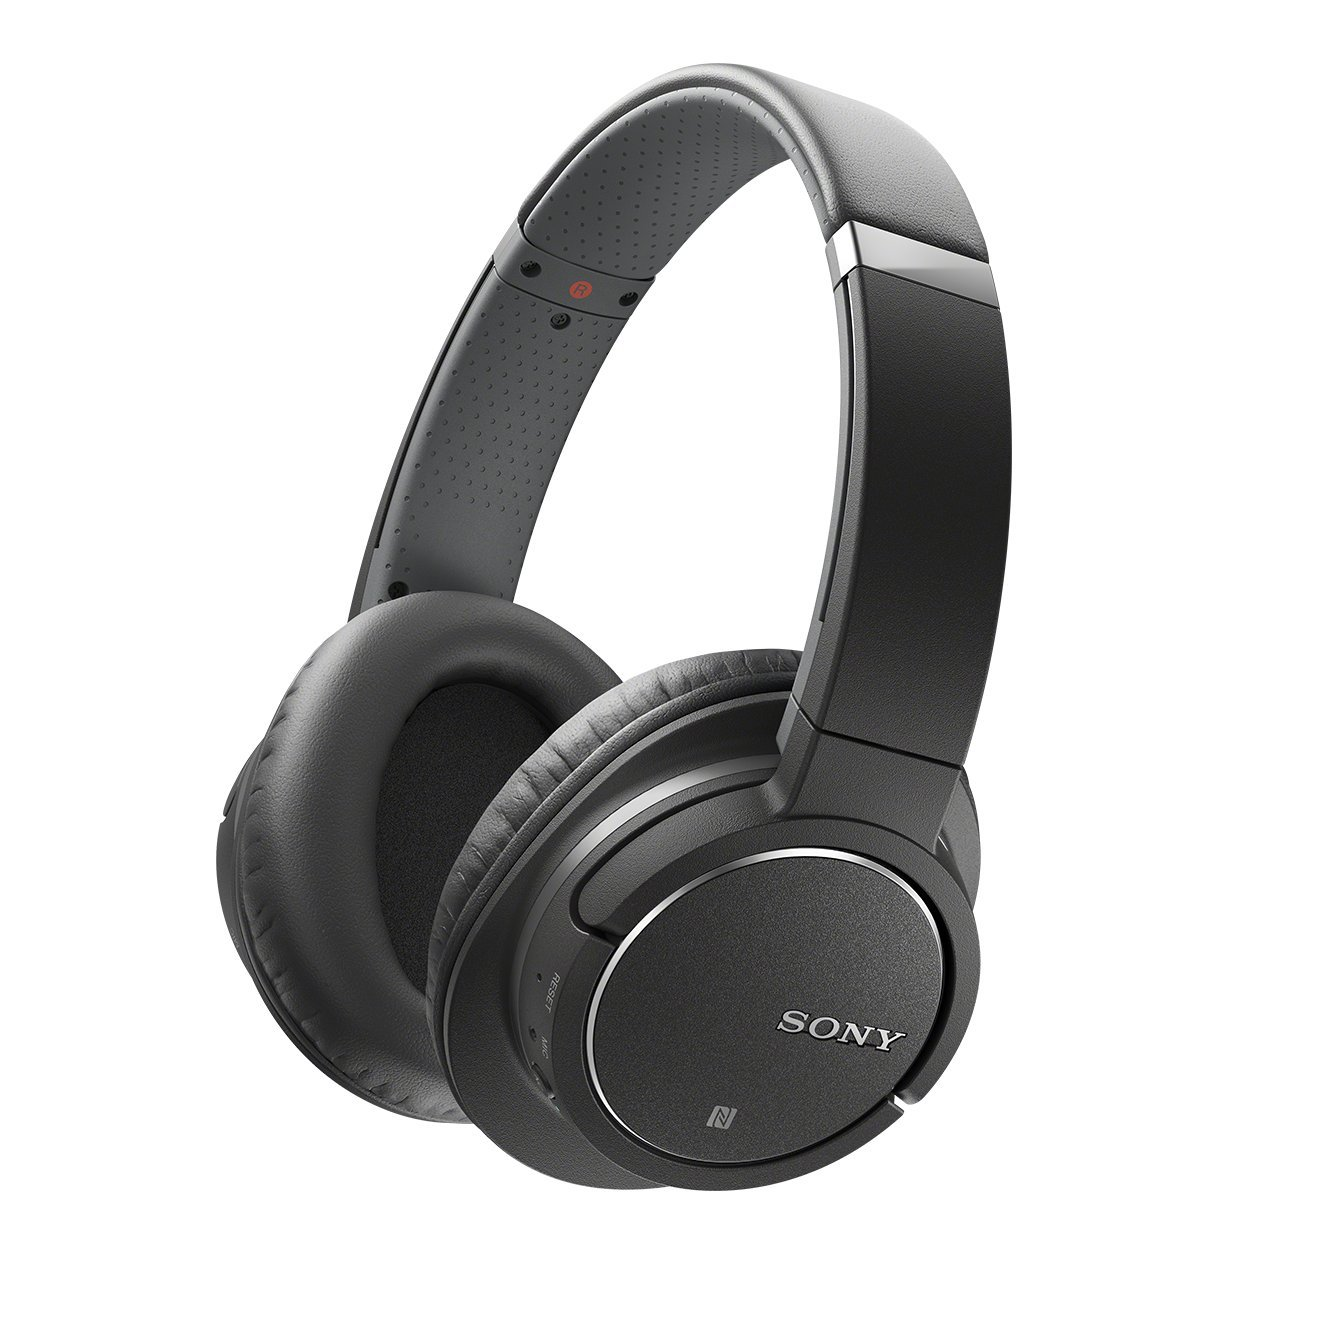 Sony Bluetooth Kopfhörer Noise Cancelling amazon